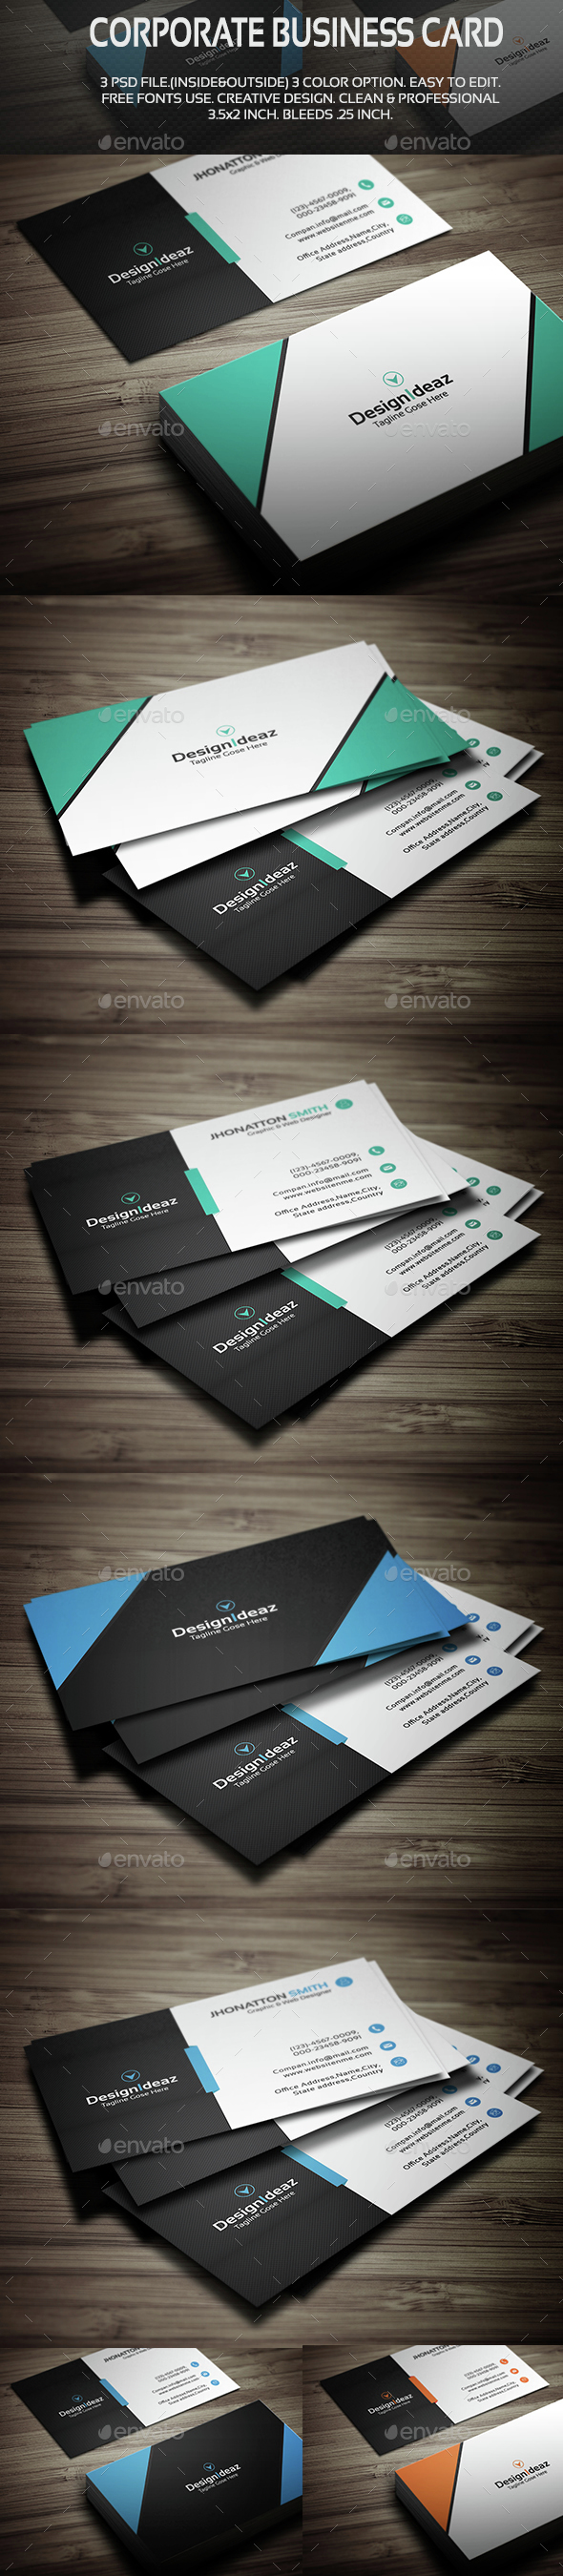 Corporate Business Card V03 - Corporate Business Cards